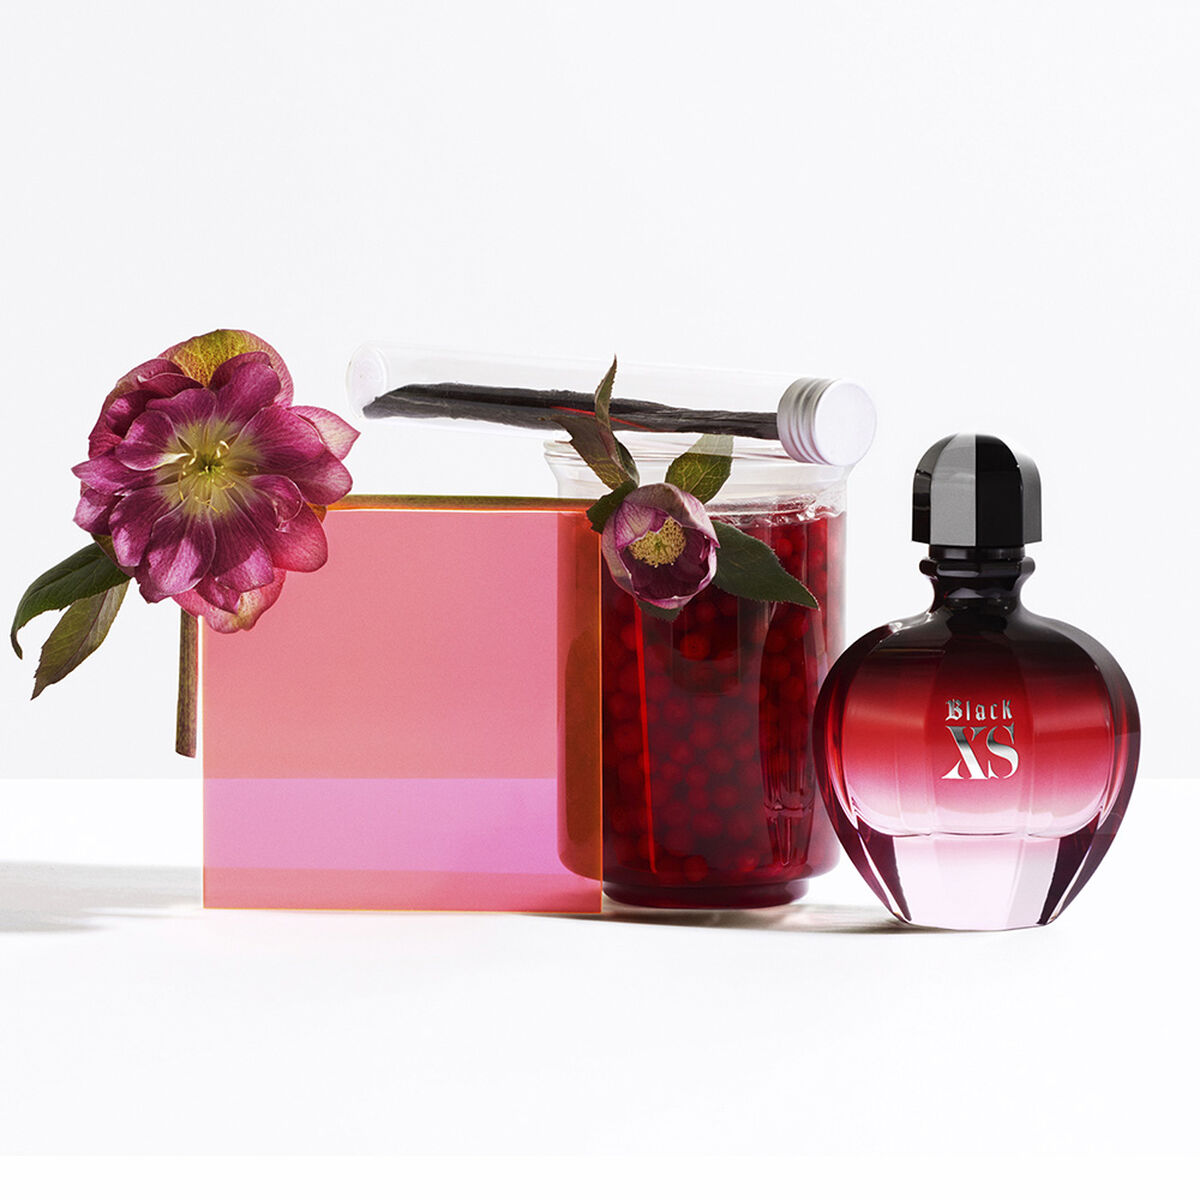 Black XS For Her EDT 50 ML